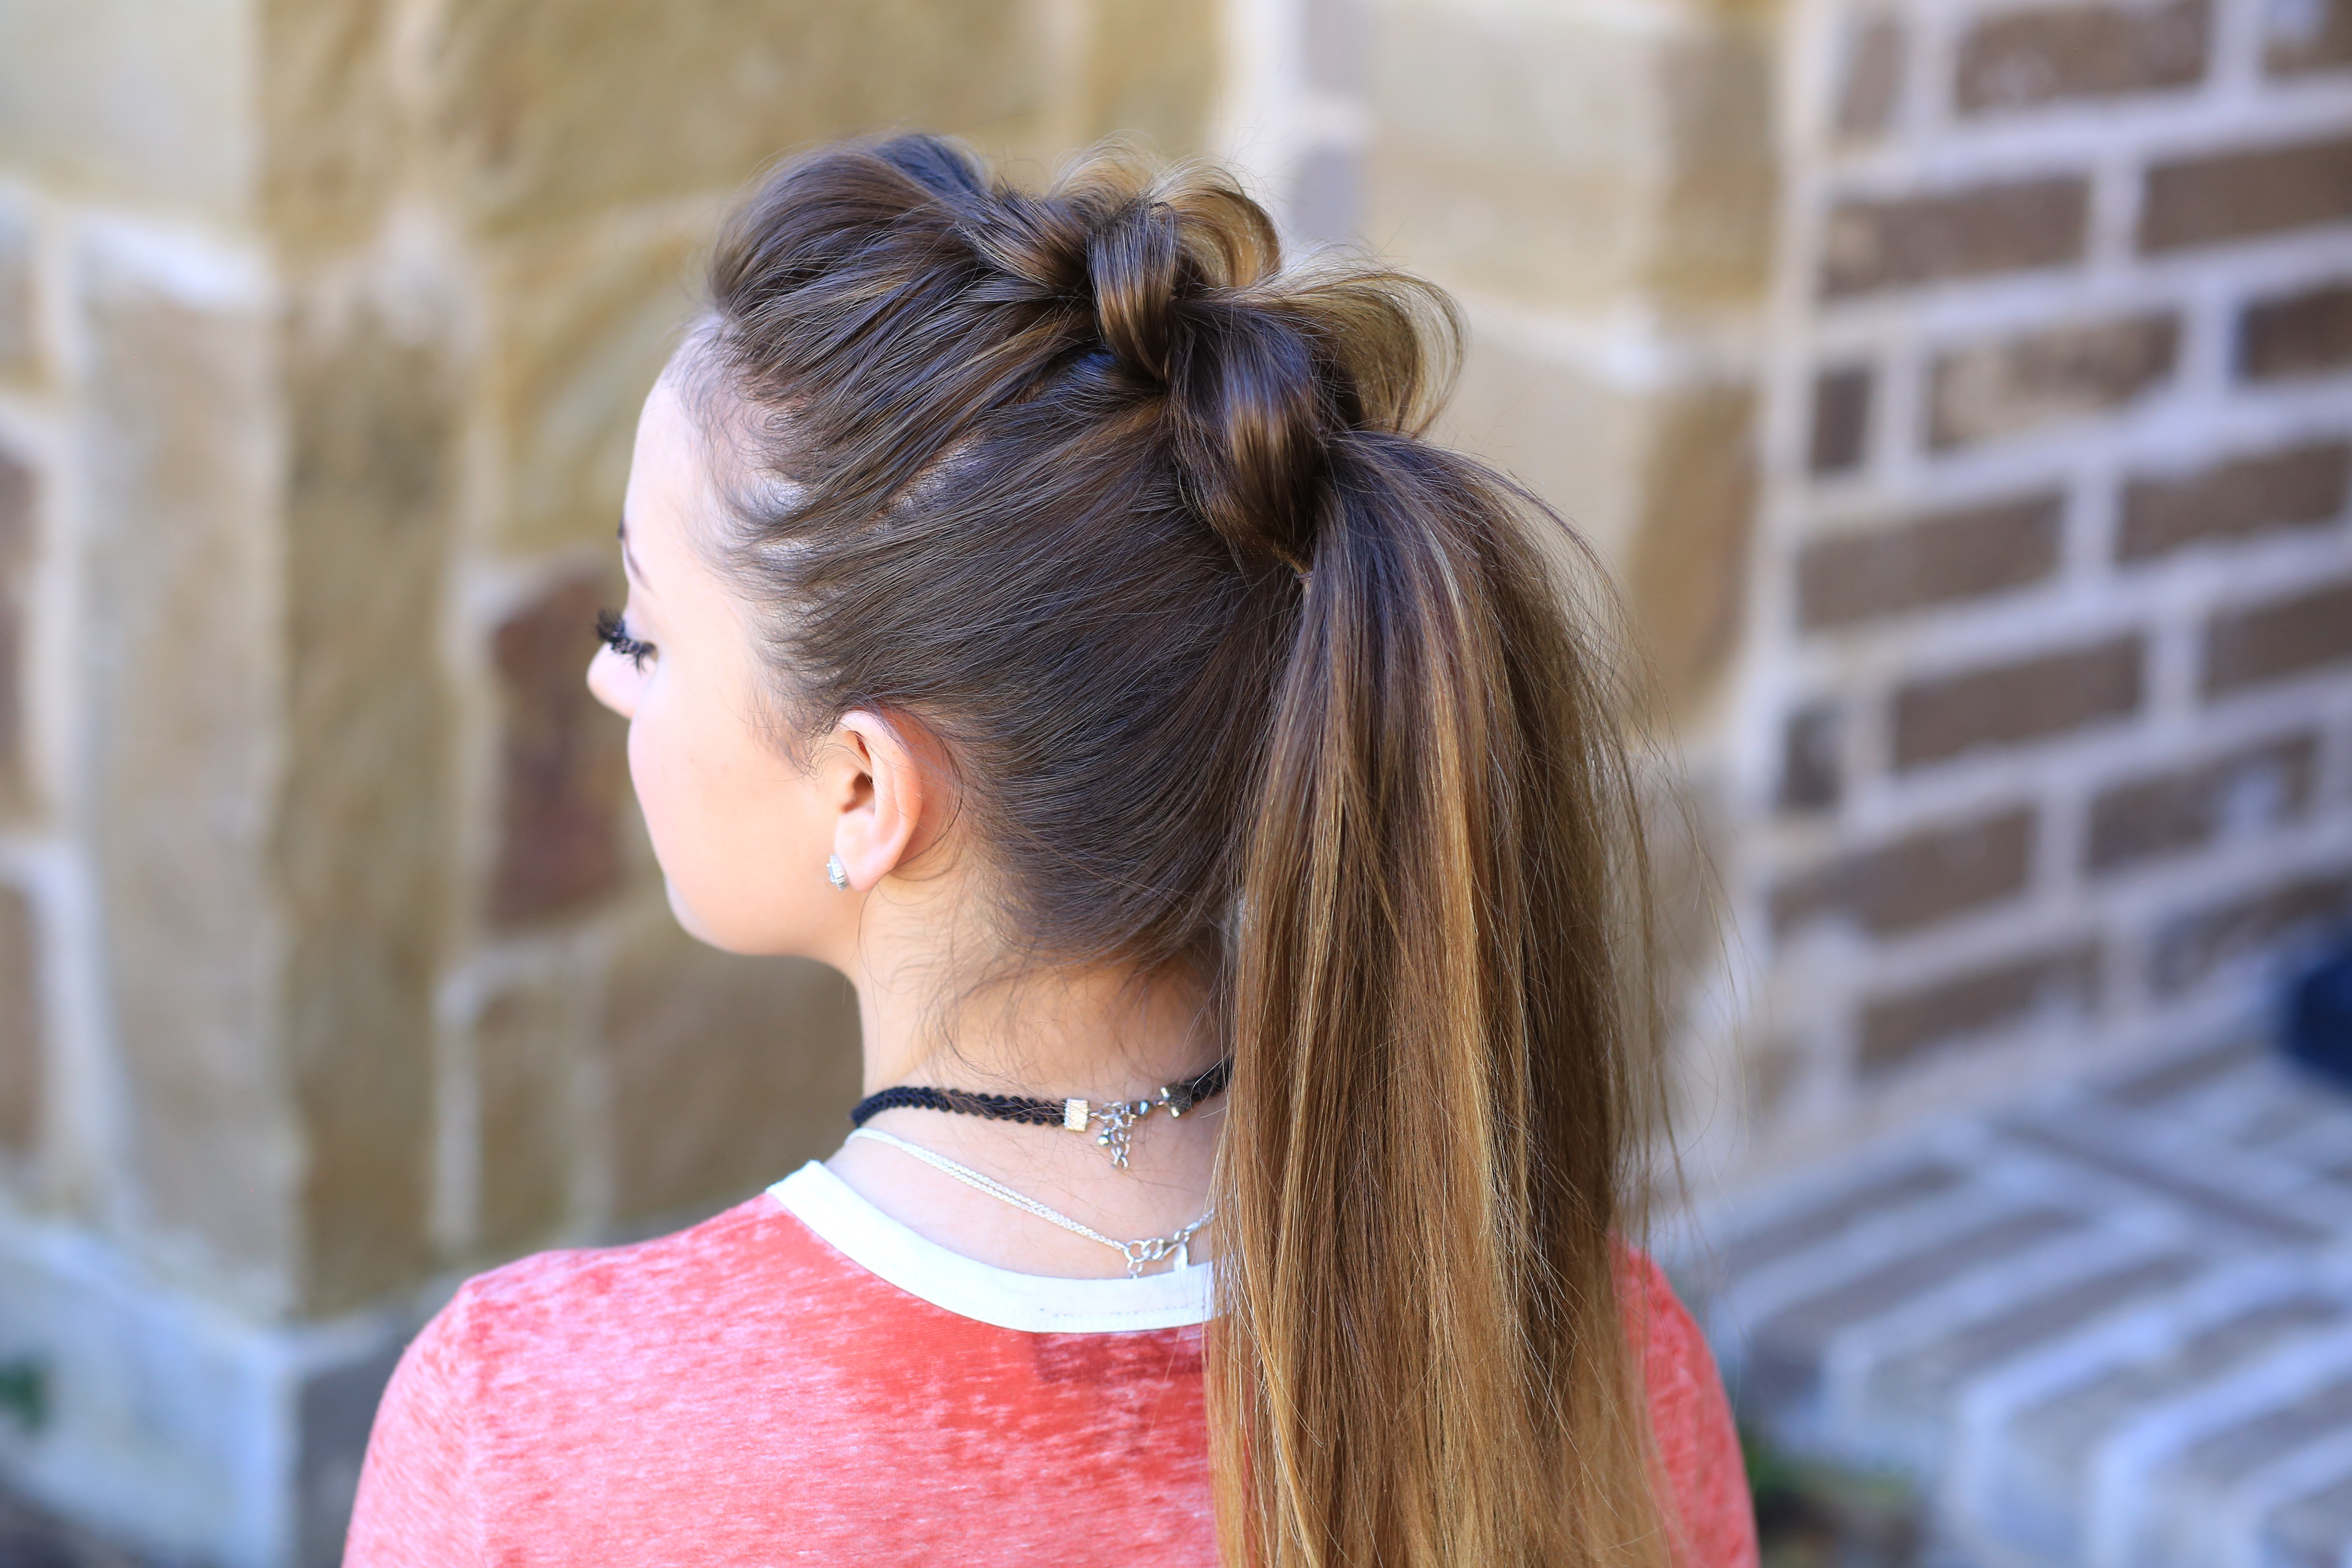 Best ideas about Haircuts Girls . Save or Pin Pull Thru Ponytail Now.